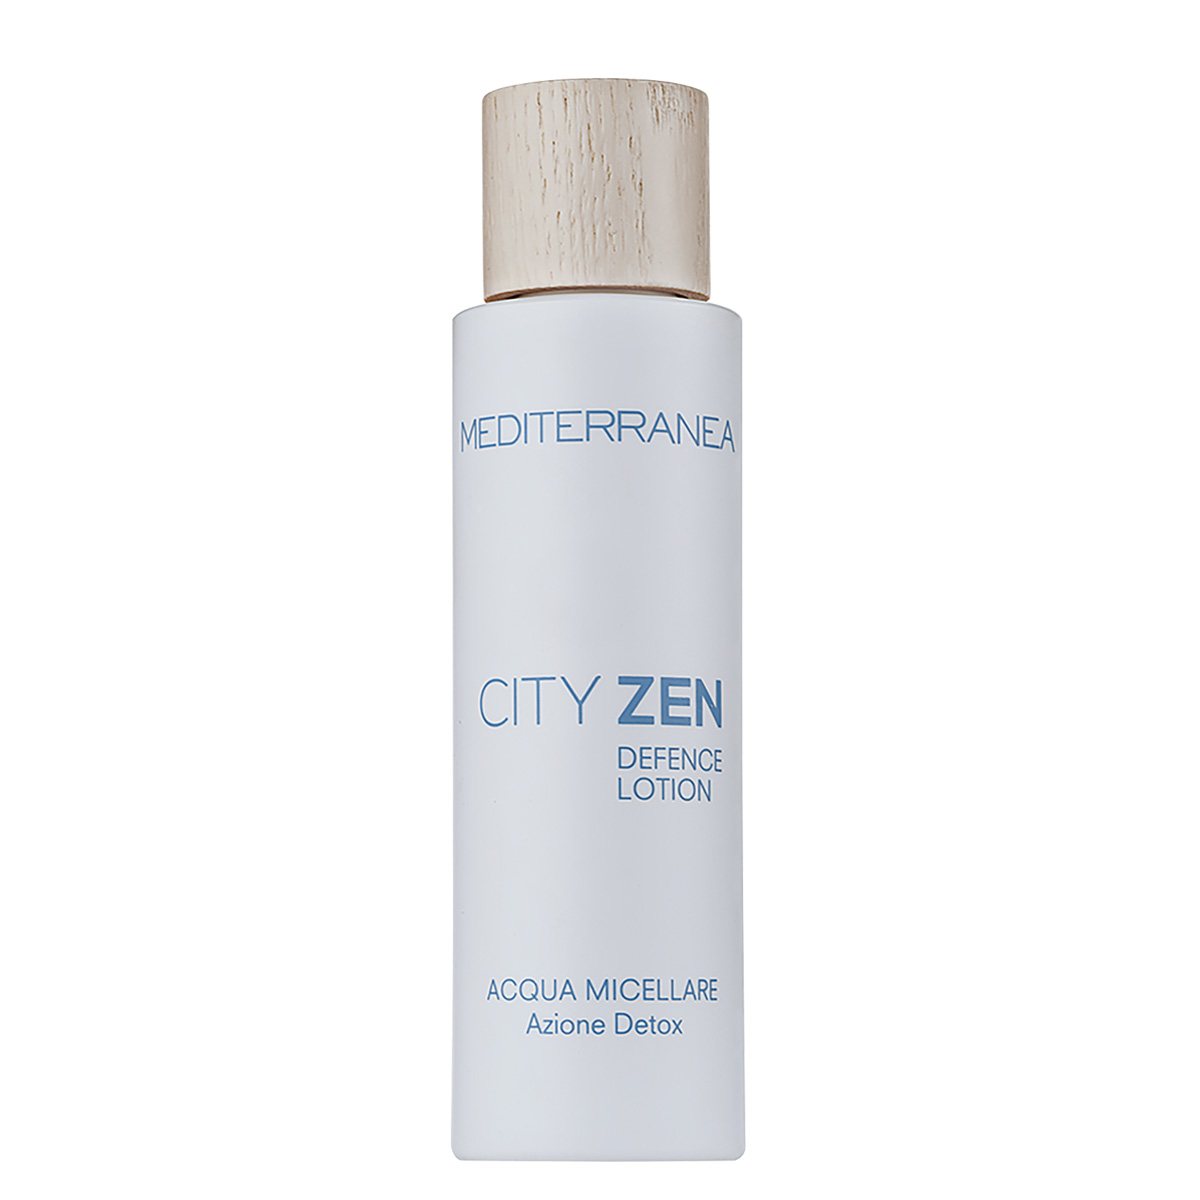 CITYZEN DEFENCE LOTION